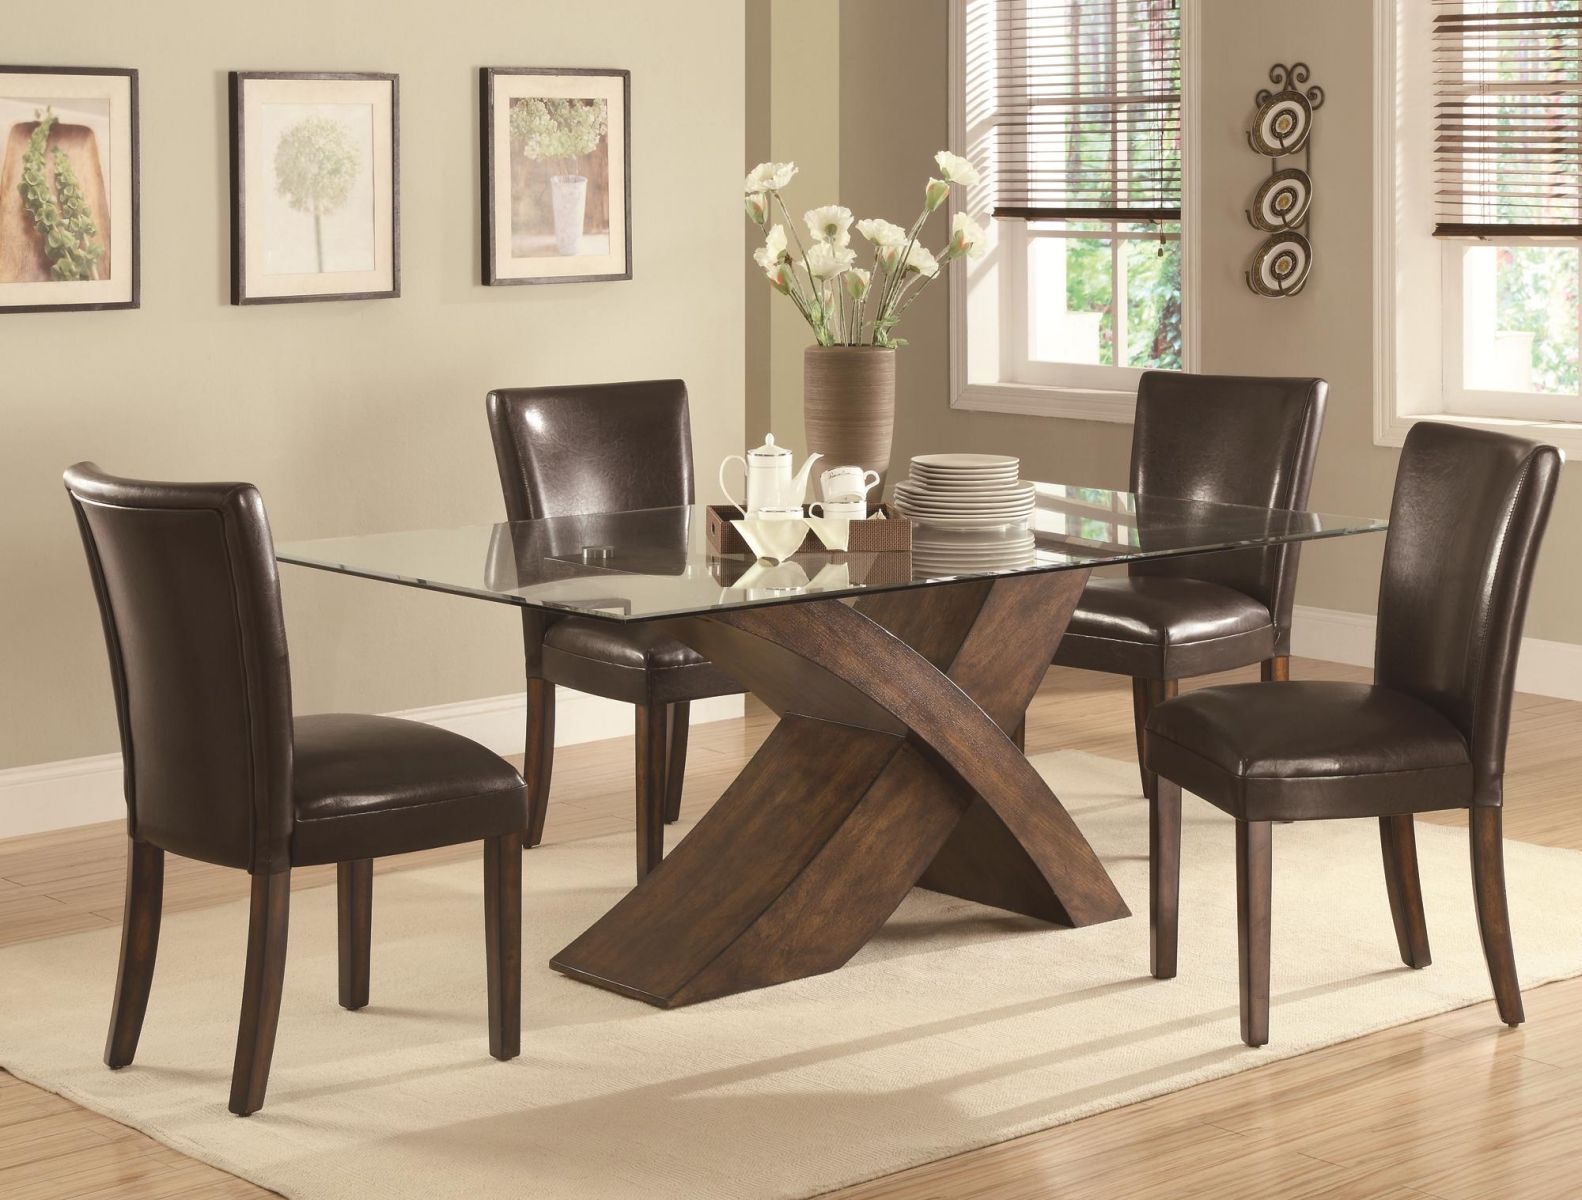 Unique Dinette Long Island New York  Coaster Dining Room Set Impressive Dining Room Table Leaf Replacement Design Decoration